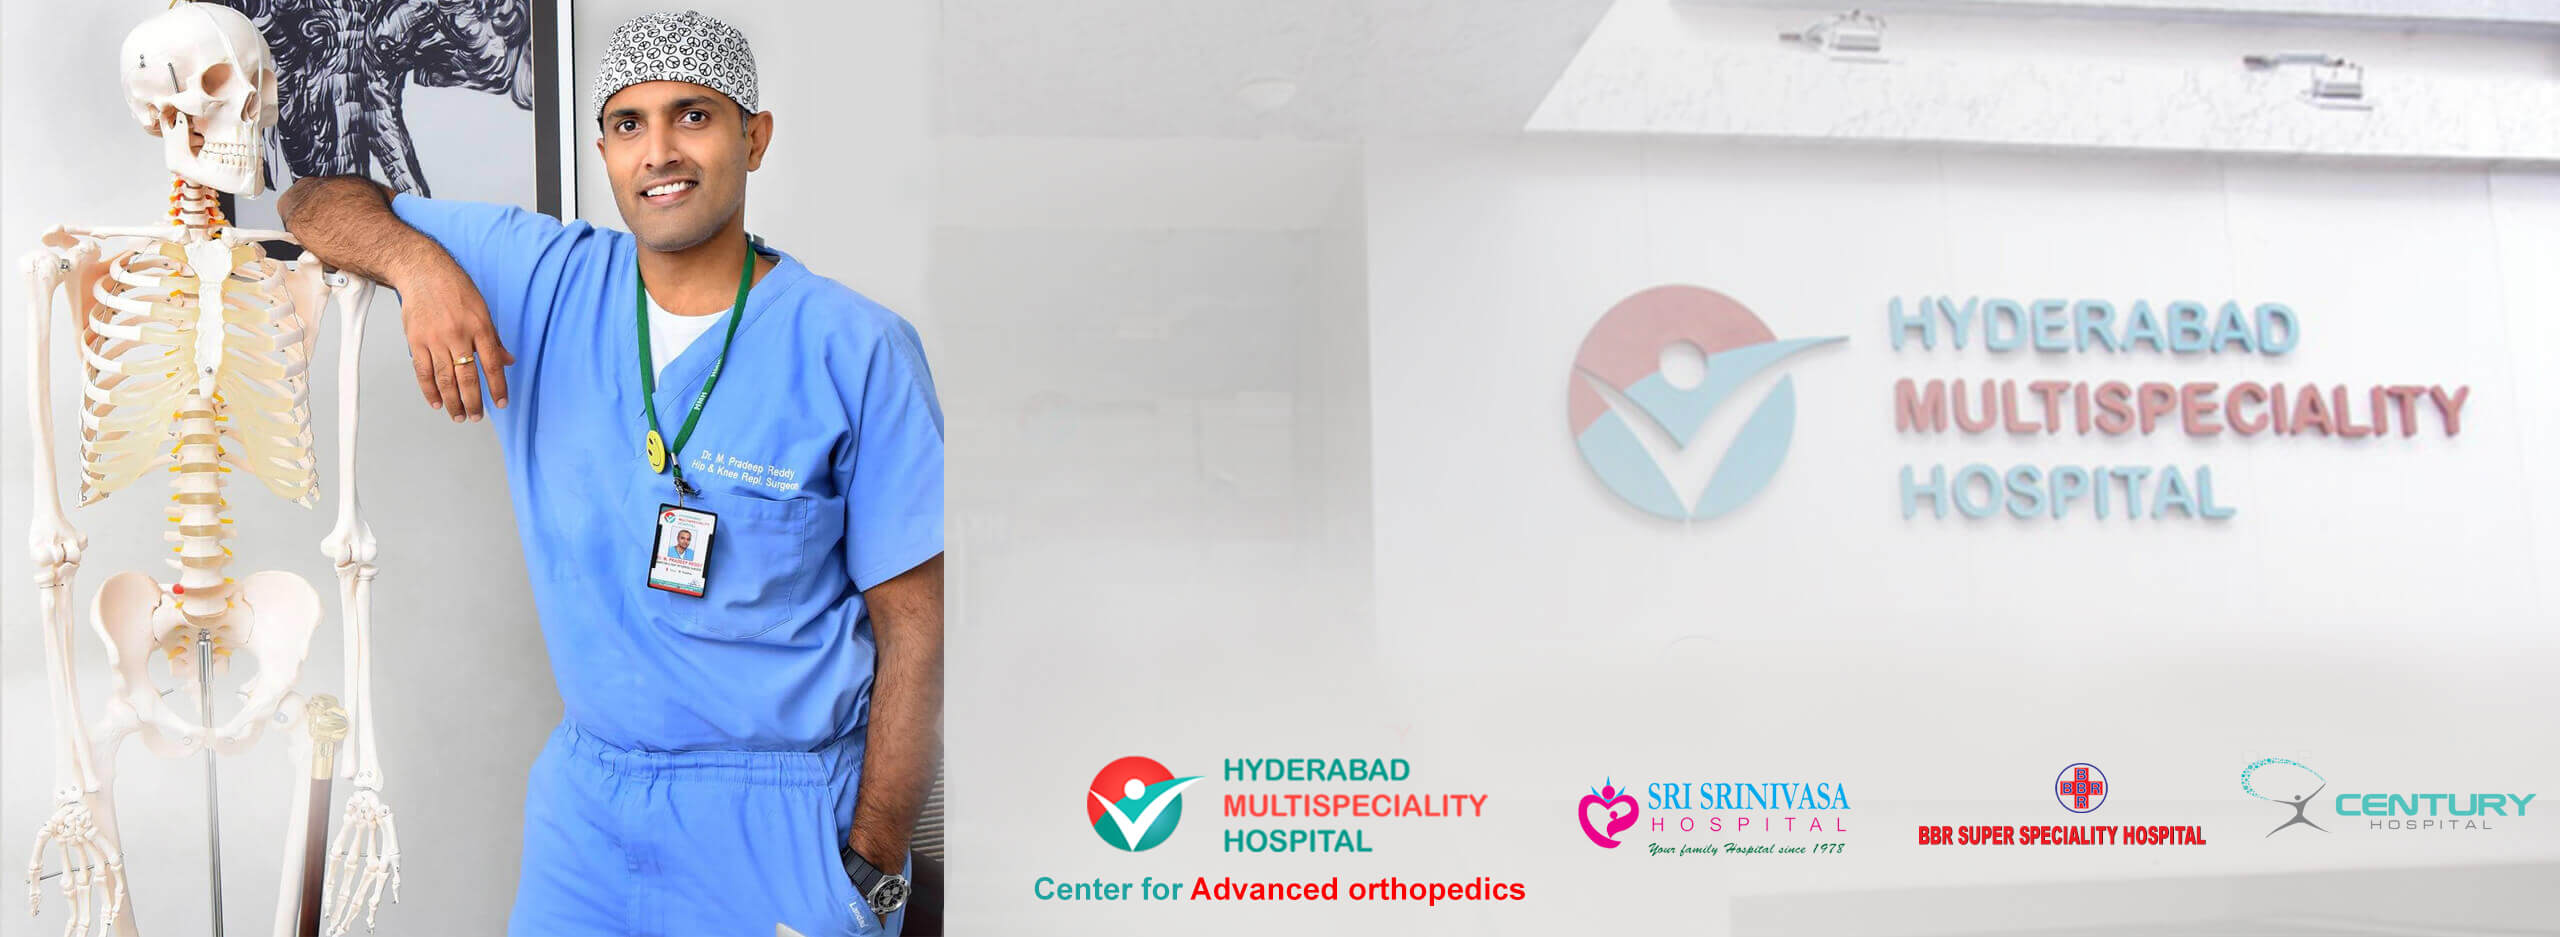 Dr Pradeep Reddy, Best Orthopedic Doctor in Hyderabad